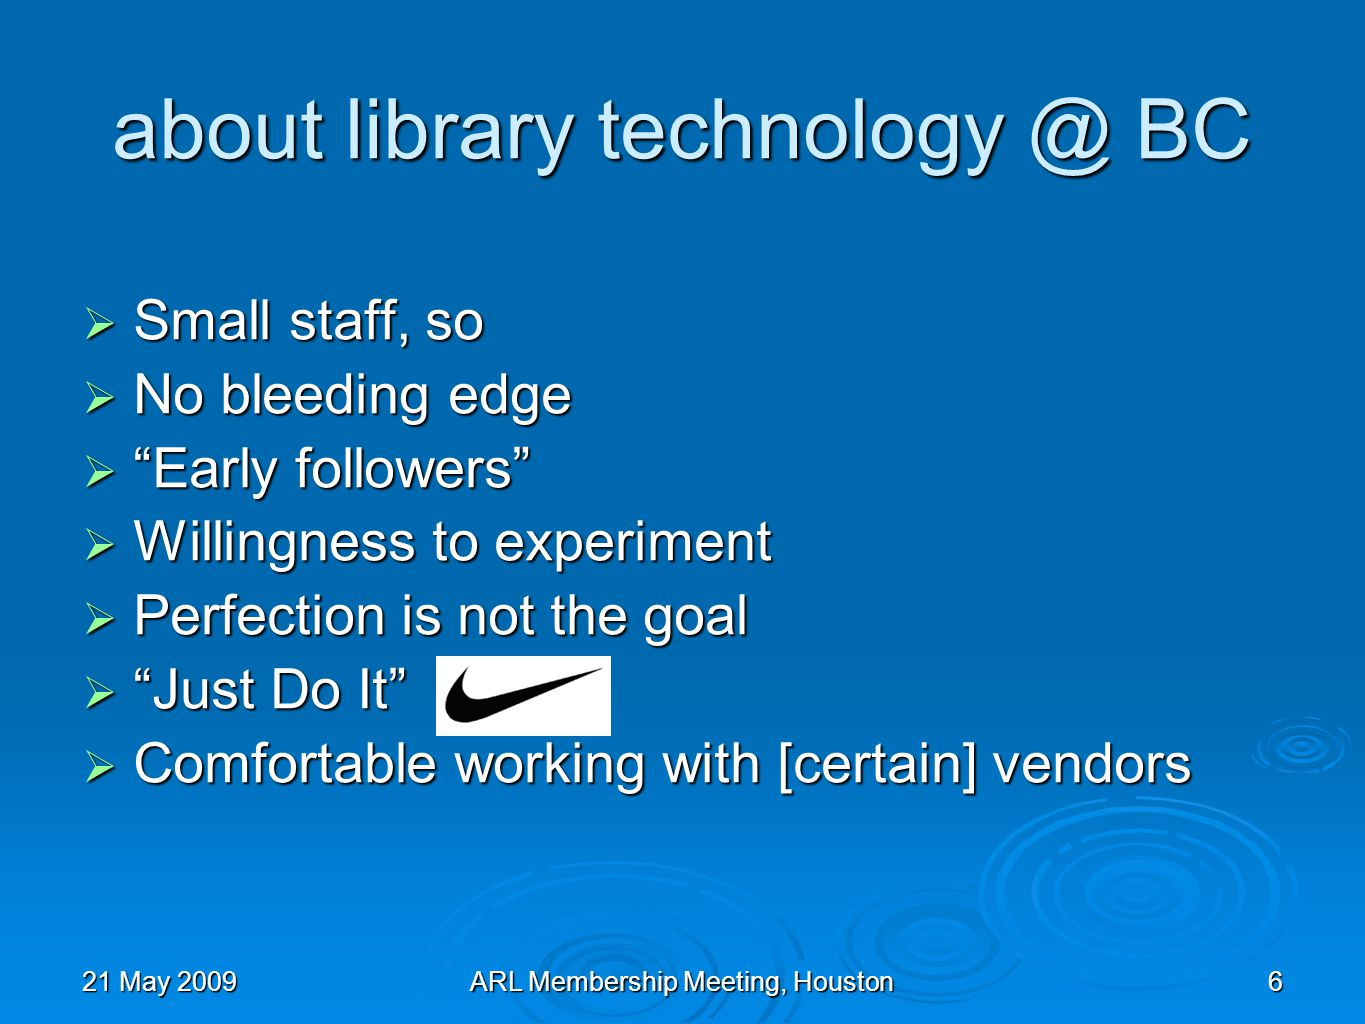 21 May 2009ARL Membership Meeting, Houston17 Scope of BCs Primo Remote: Articles/Databases Remote: Articles/Databases Federated search via MetaLib Federated search via MetaLib